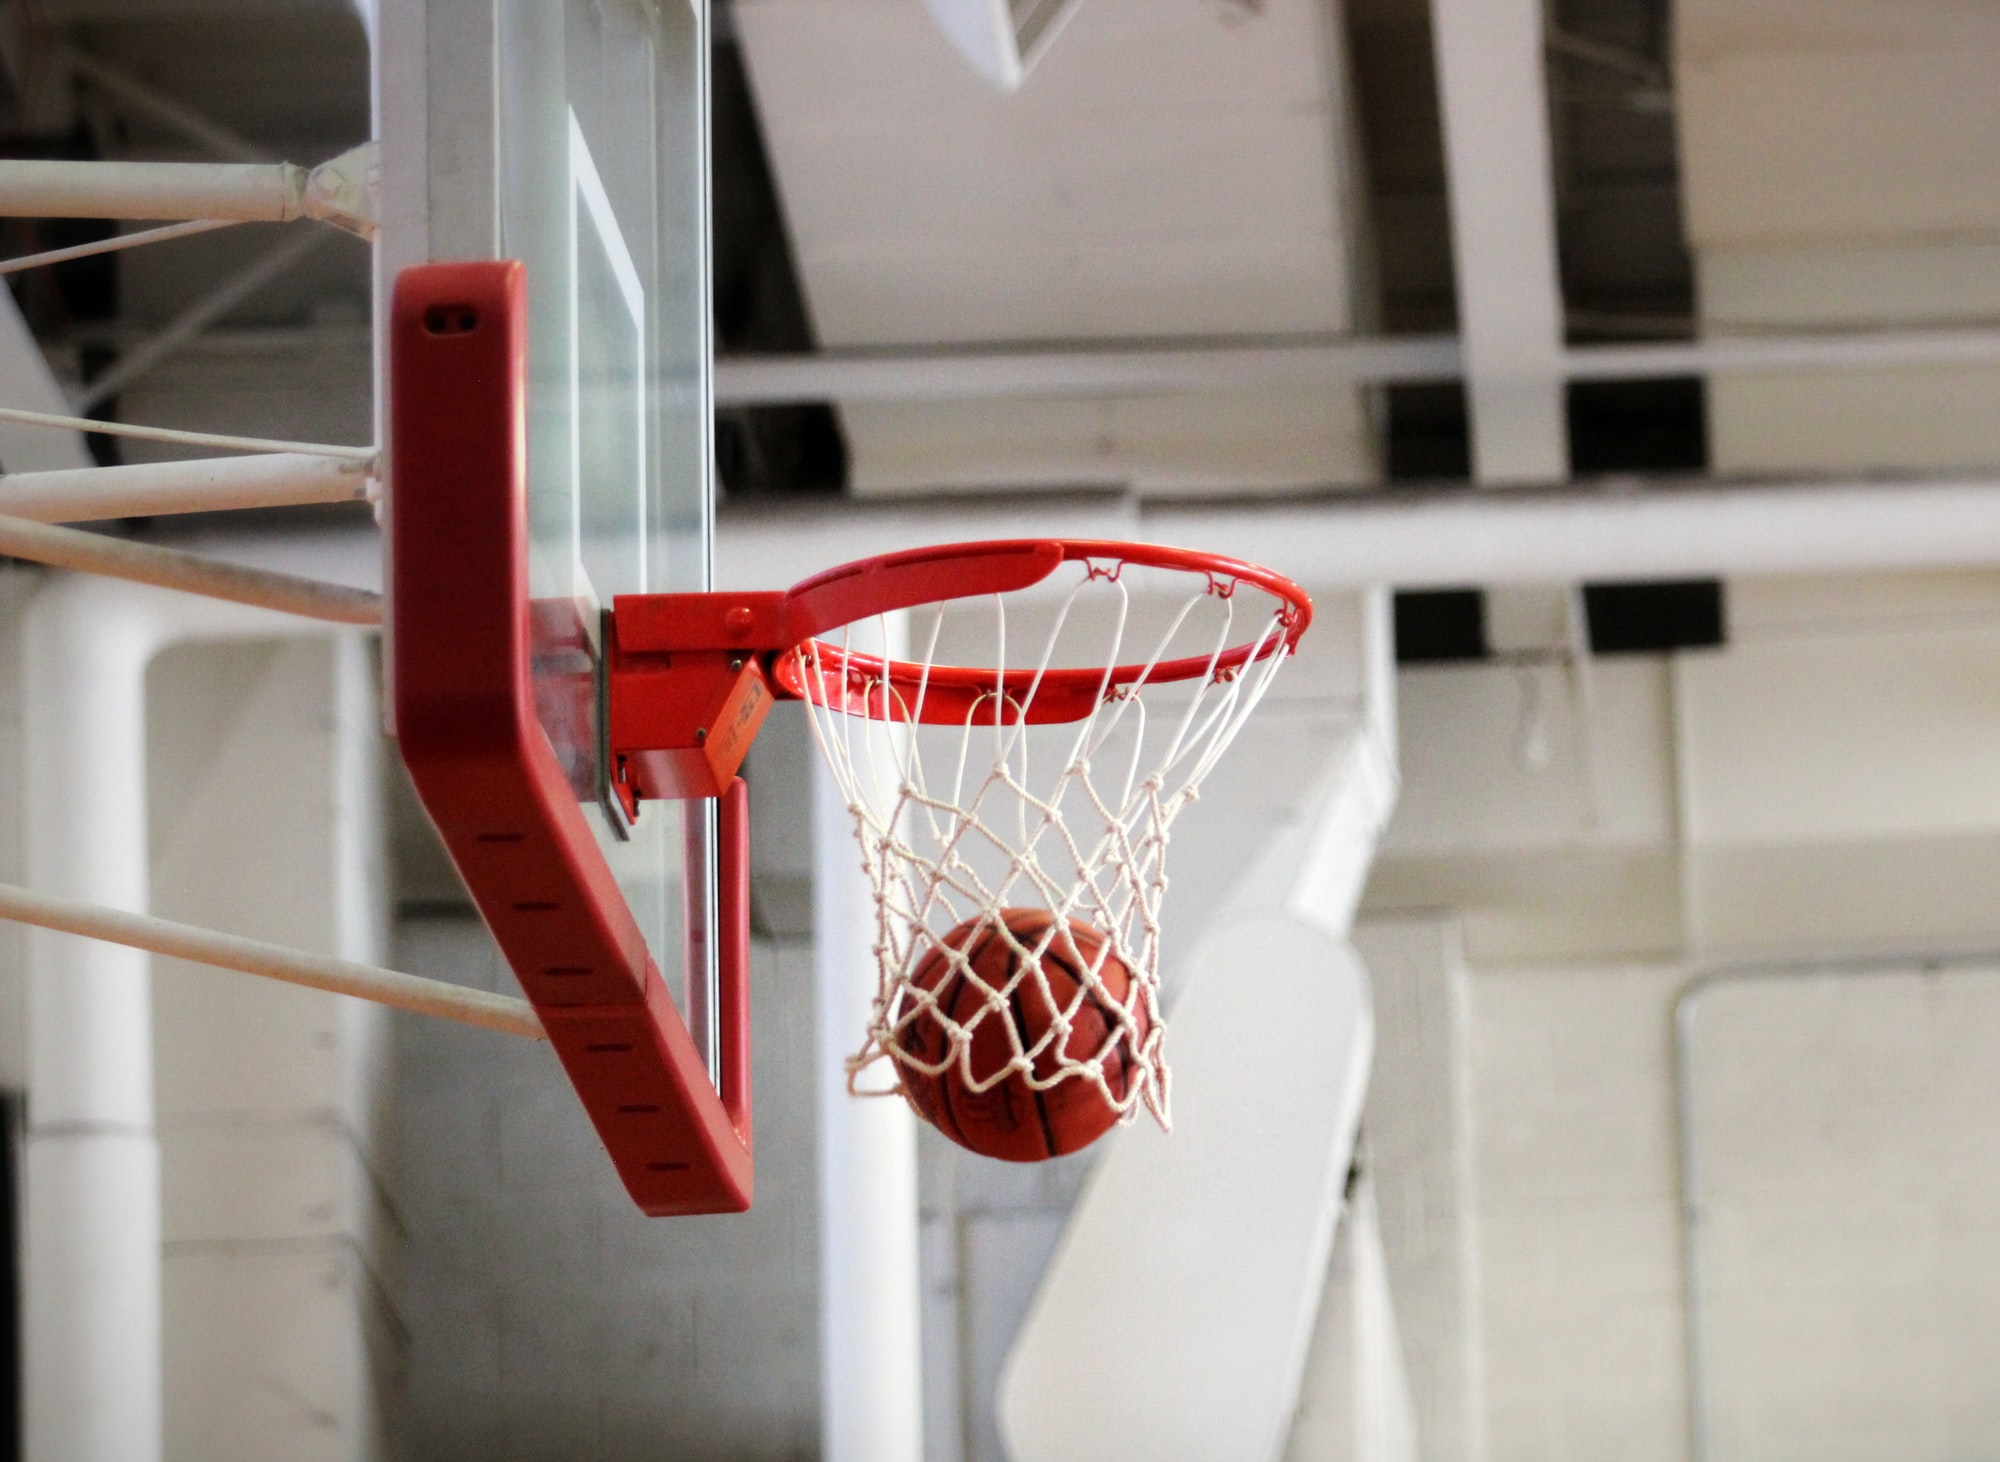 A basketball falls through the net of a basket.